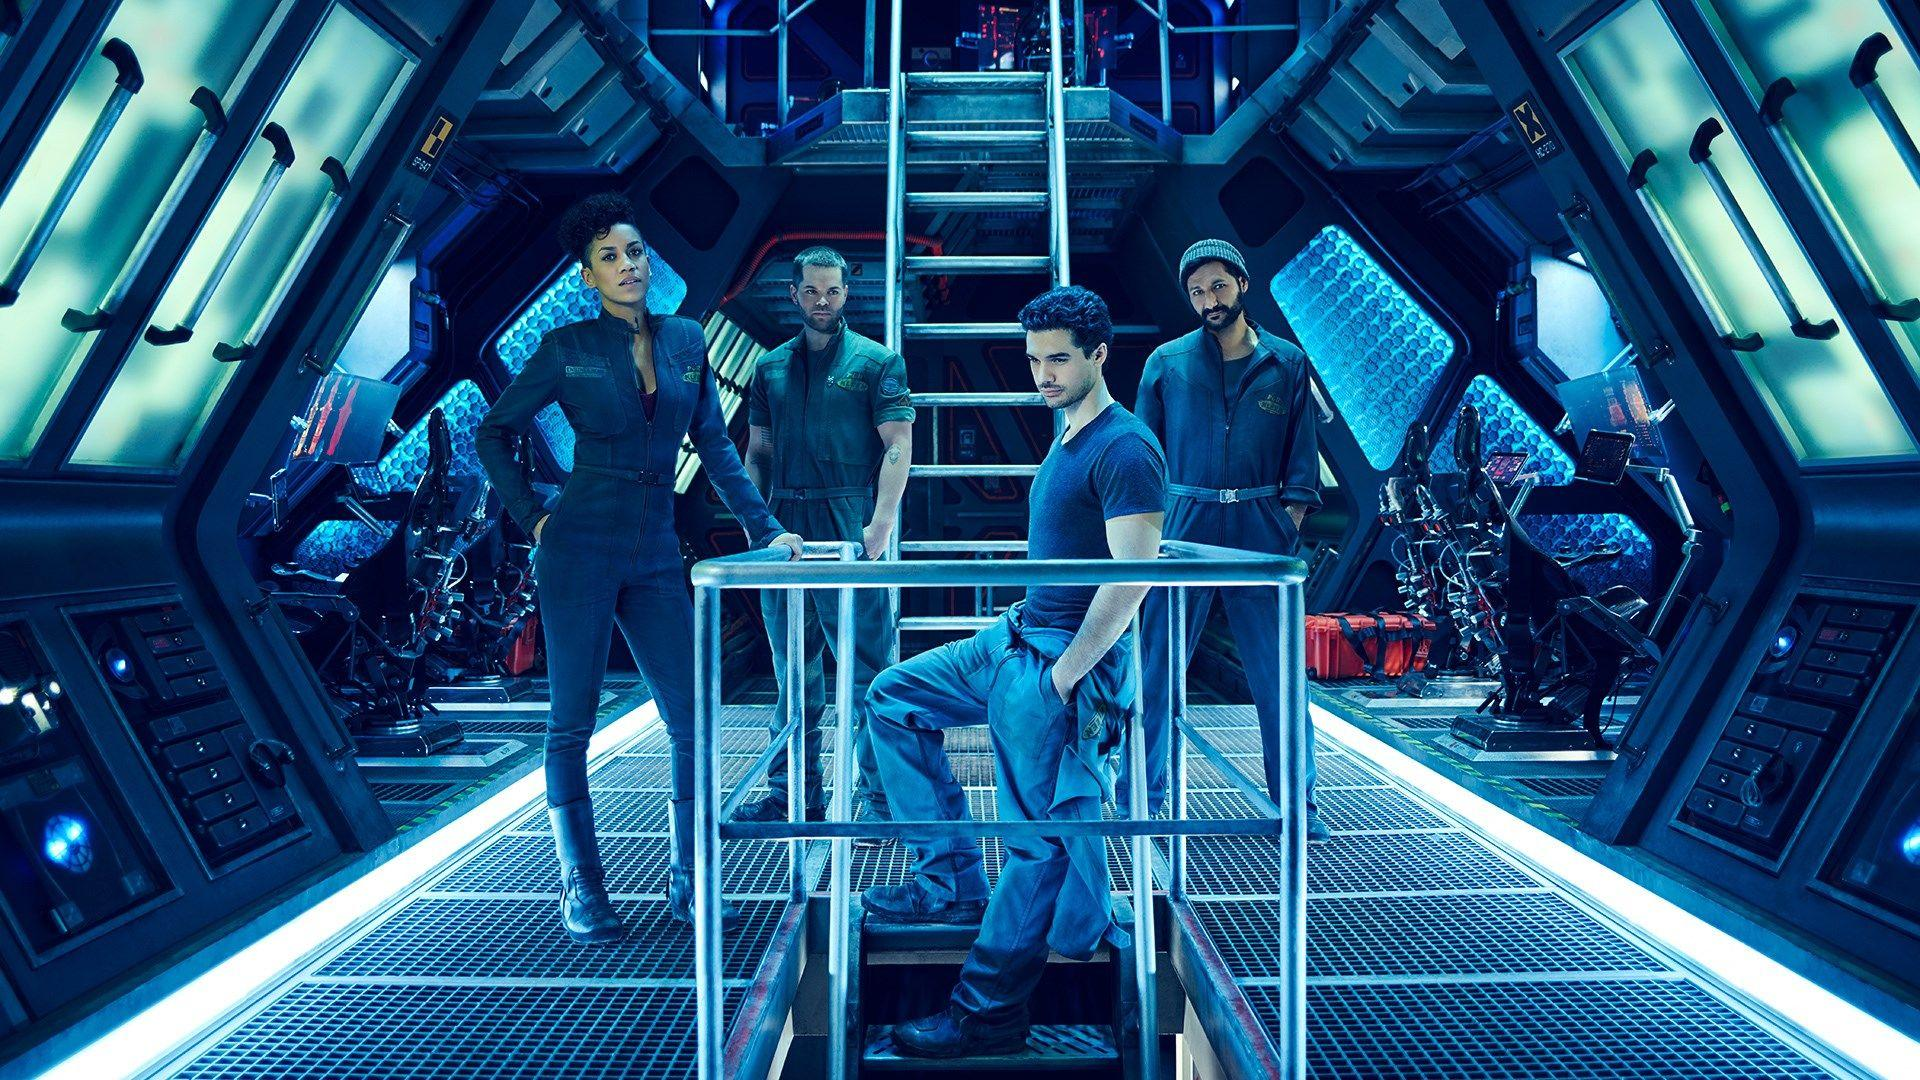 the expanse season 5 release date